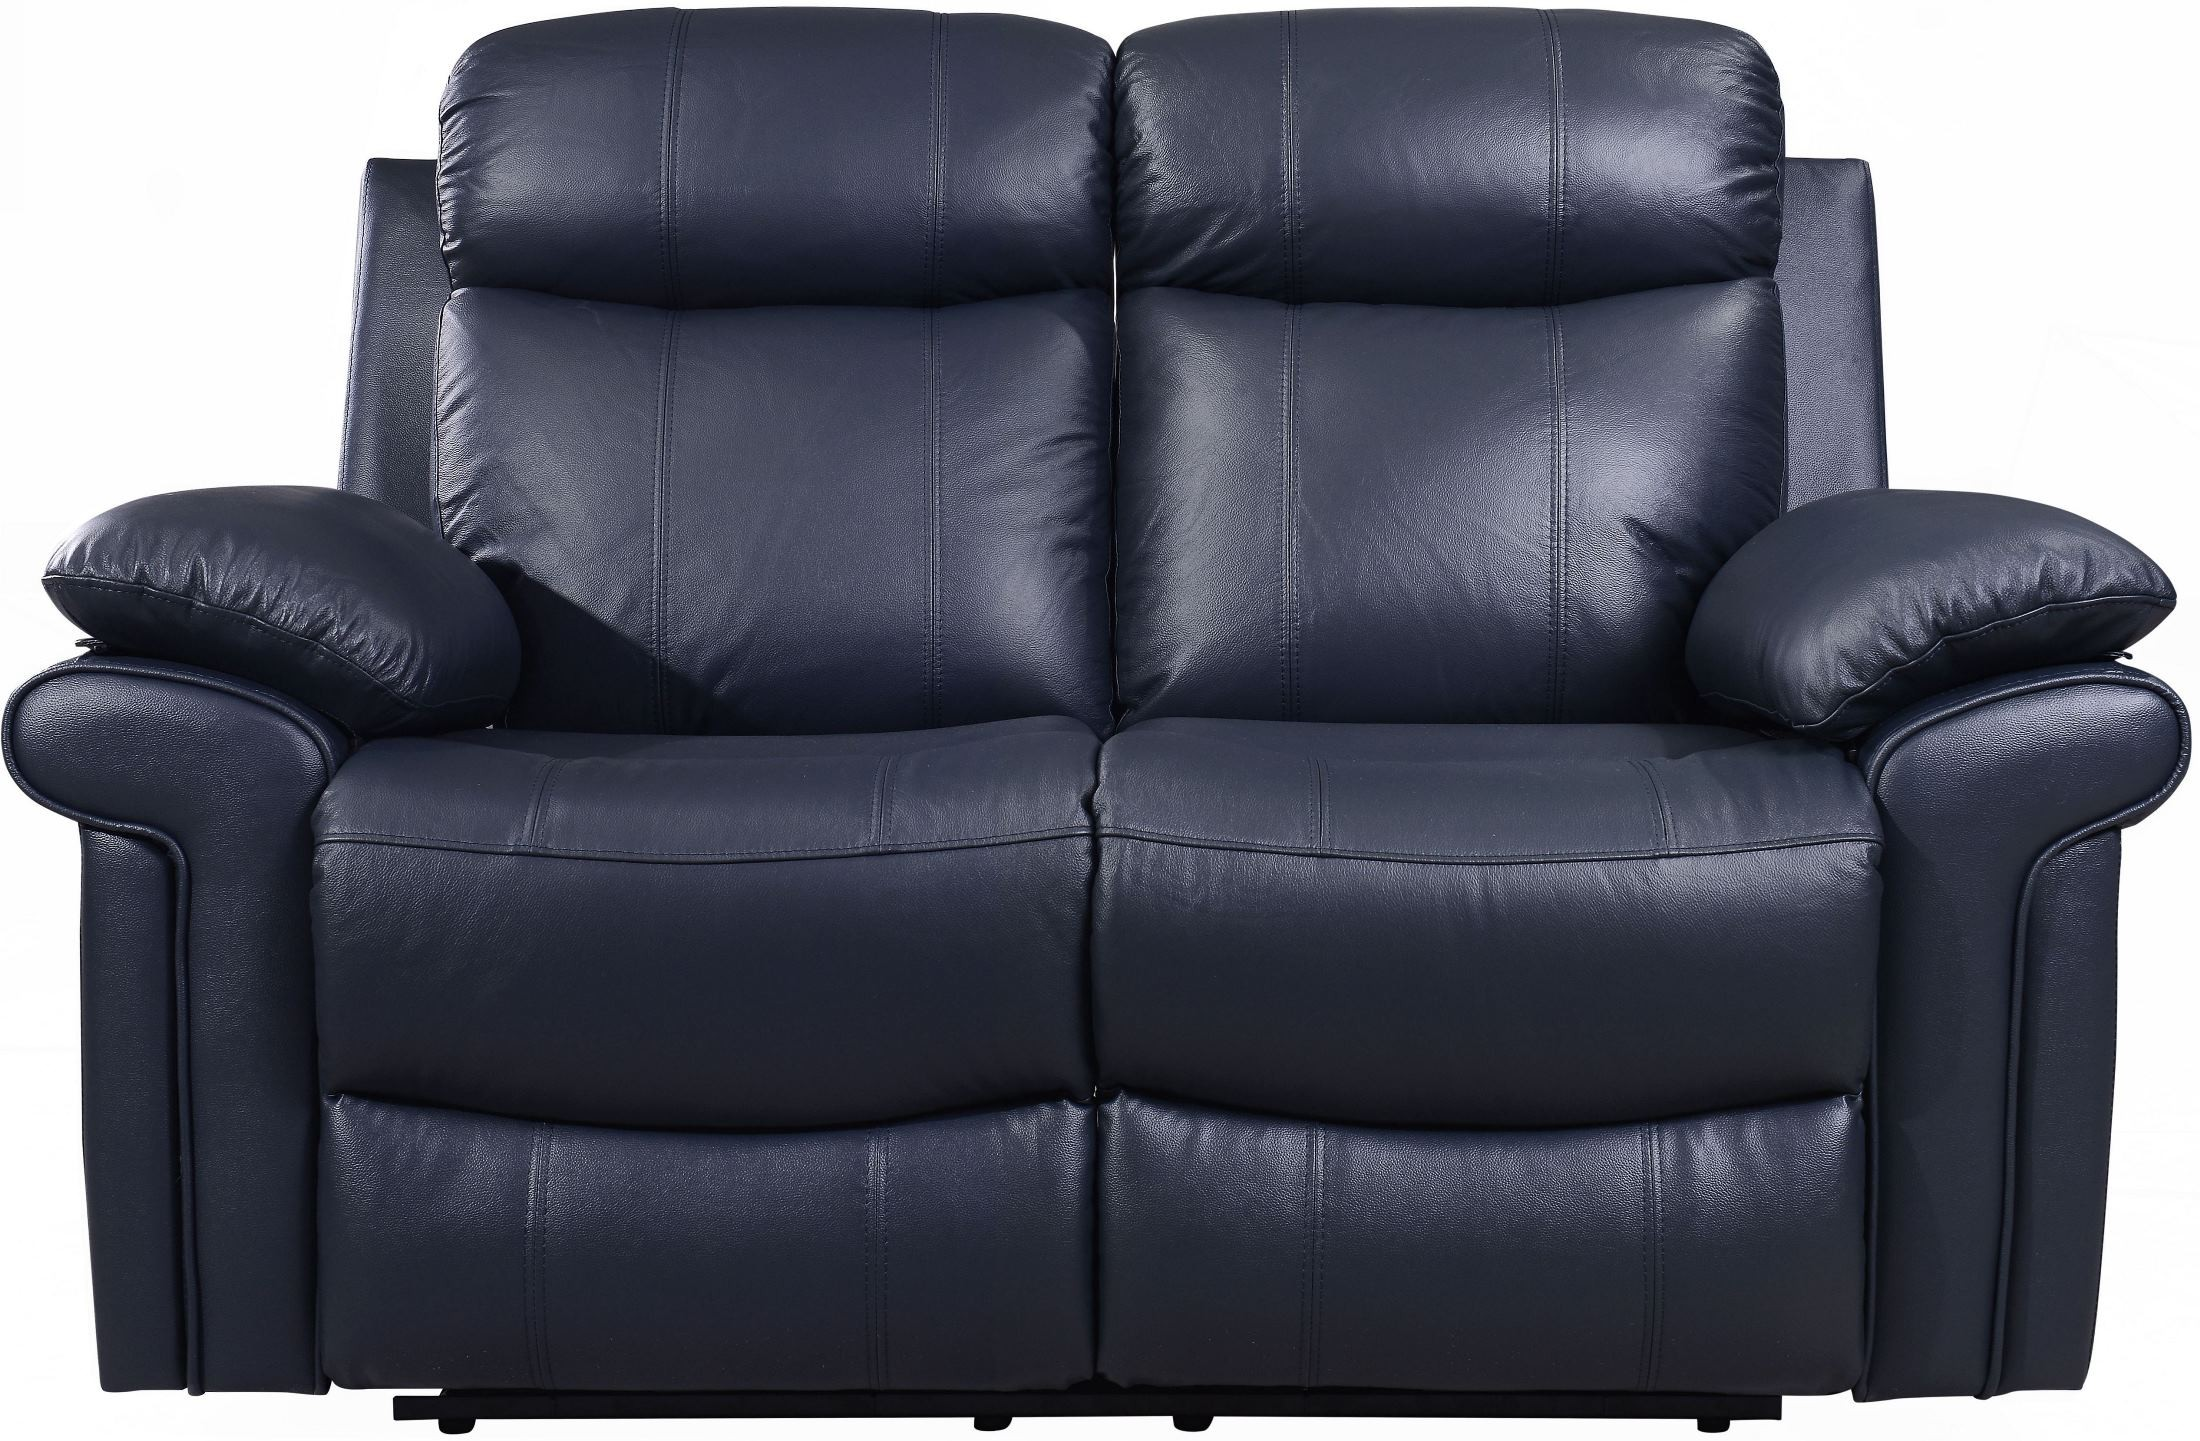 Shae Joplin Blue Leather Power Reclining Living Room Set from Luxe